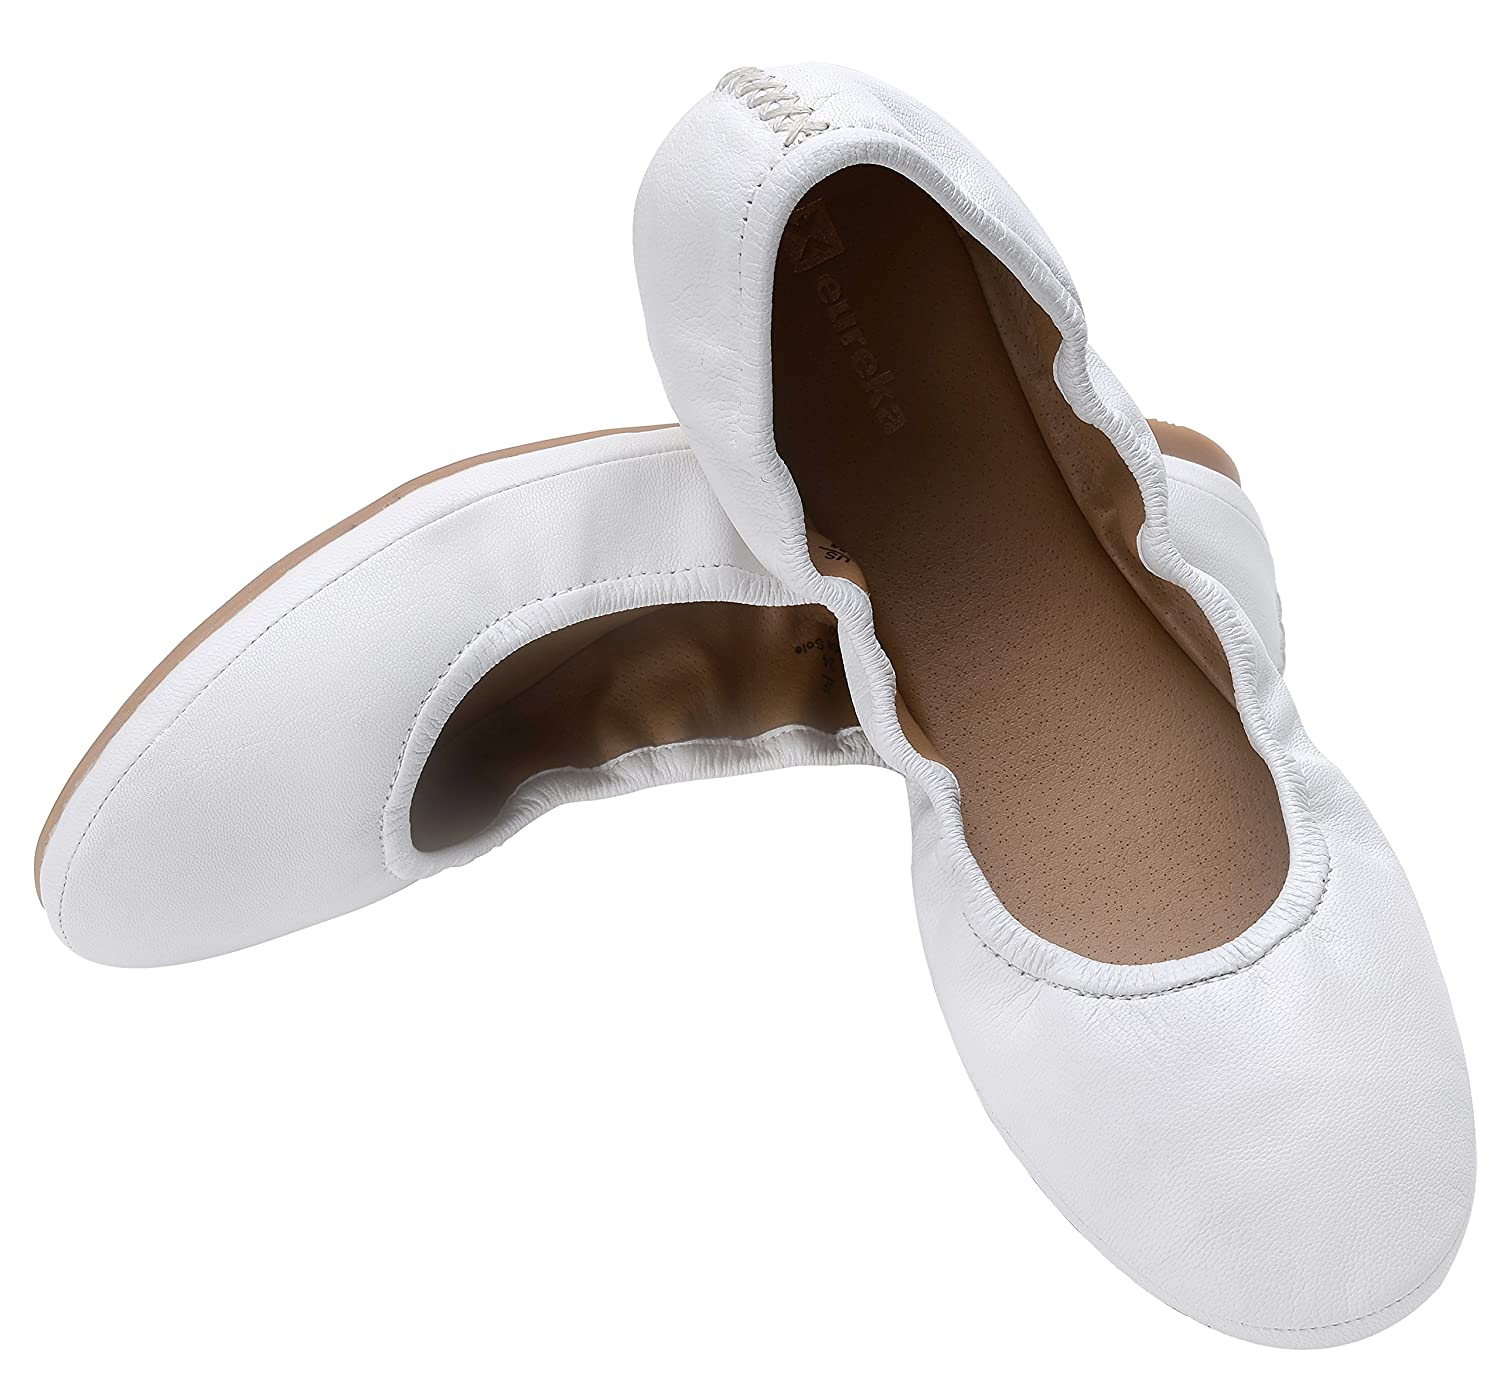 Eureka USA Women's Audrey Leather Ballet Flat B074V3F2X8 9 B(M) US|202 Cream White